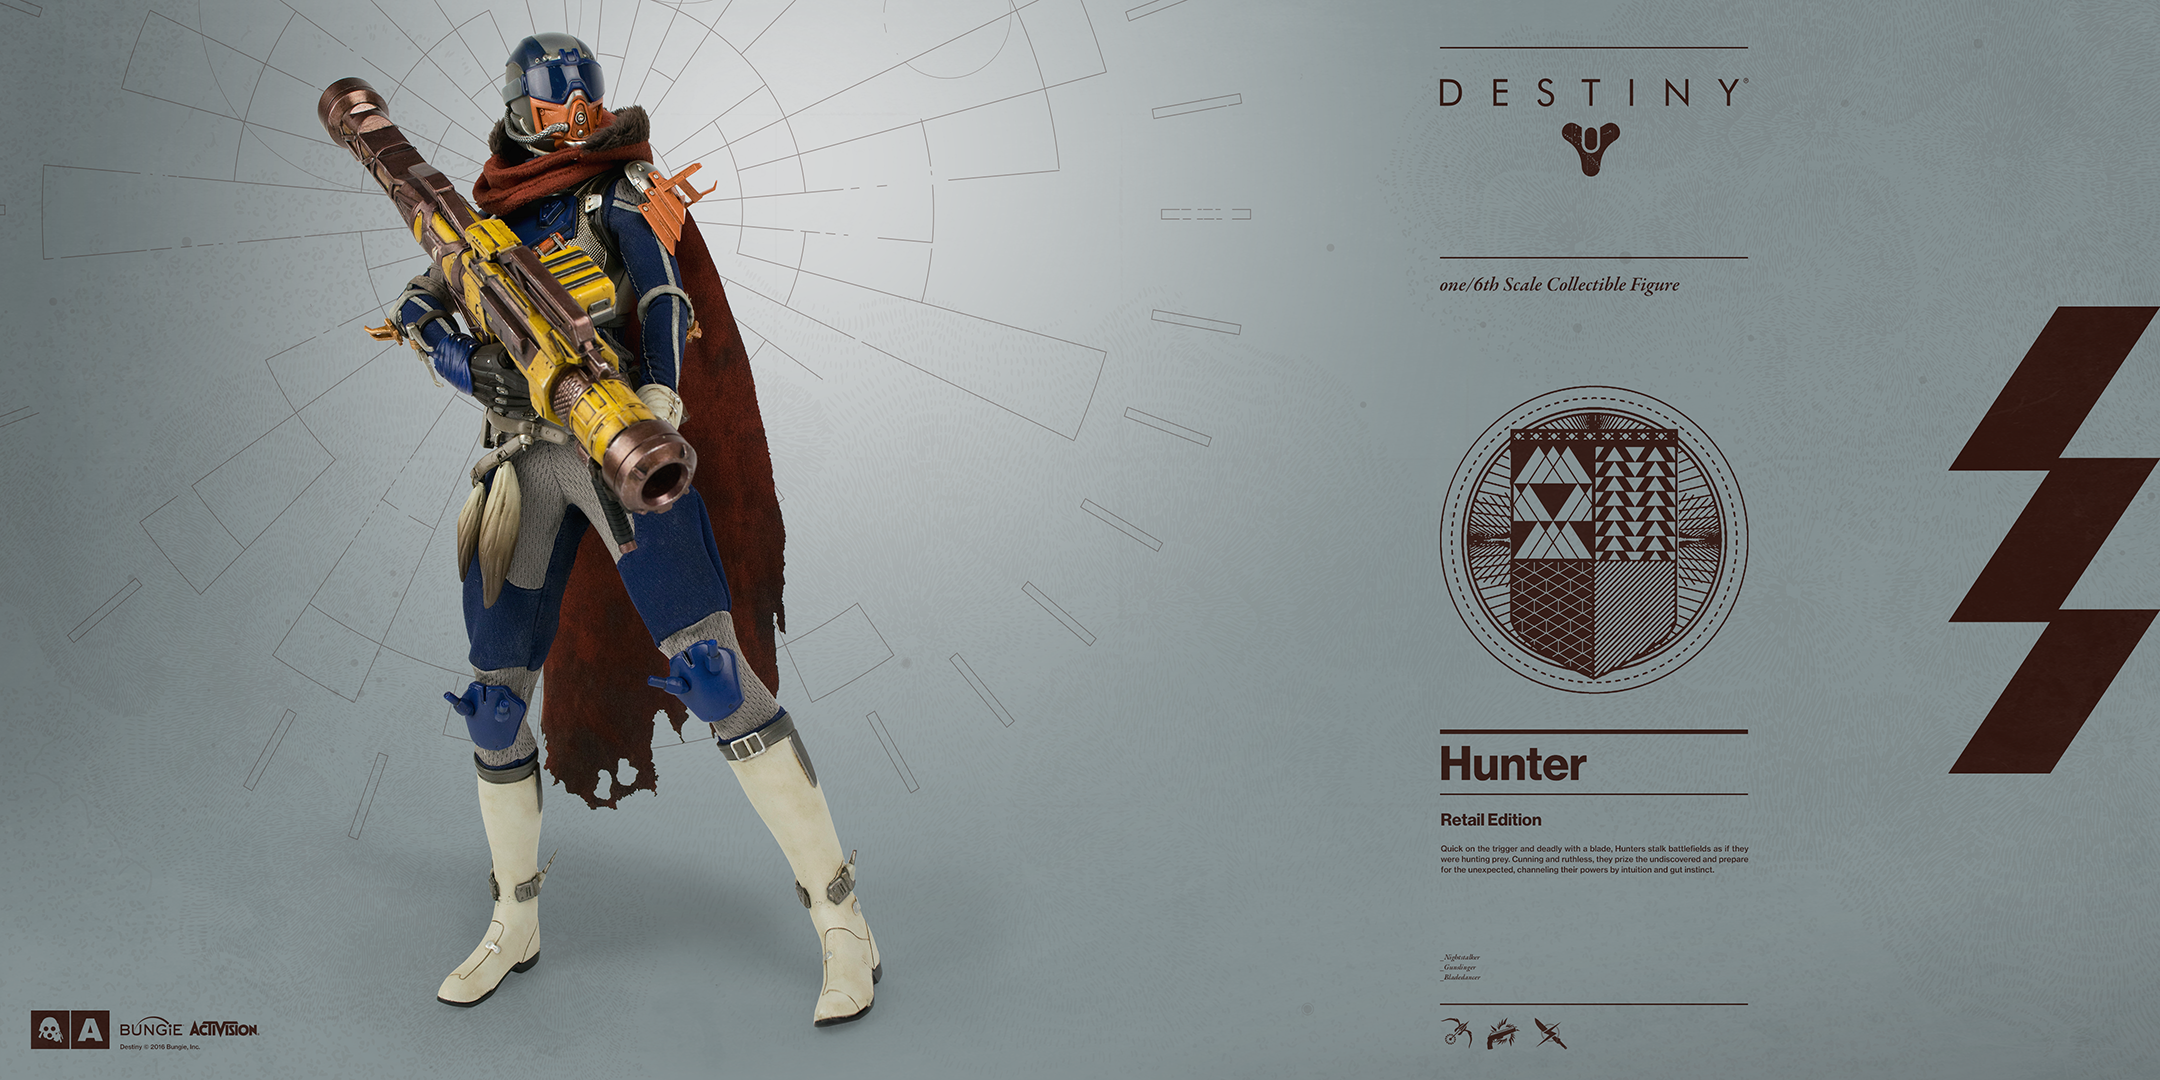 3A_Destiny_Hunter_RetailEdition_Landscape_Left_v002.png